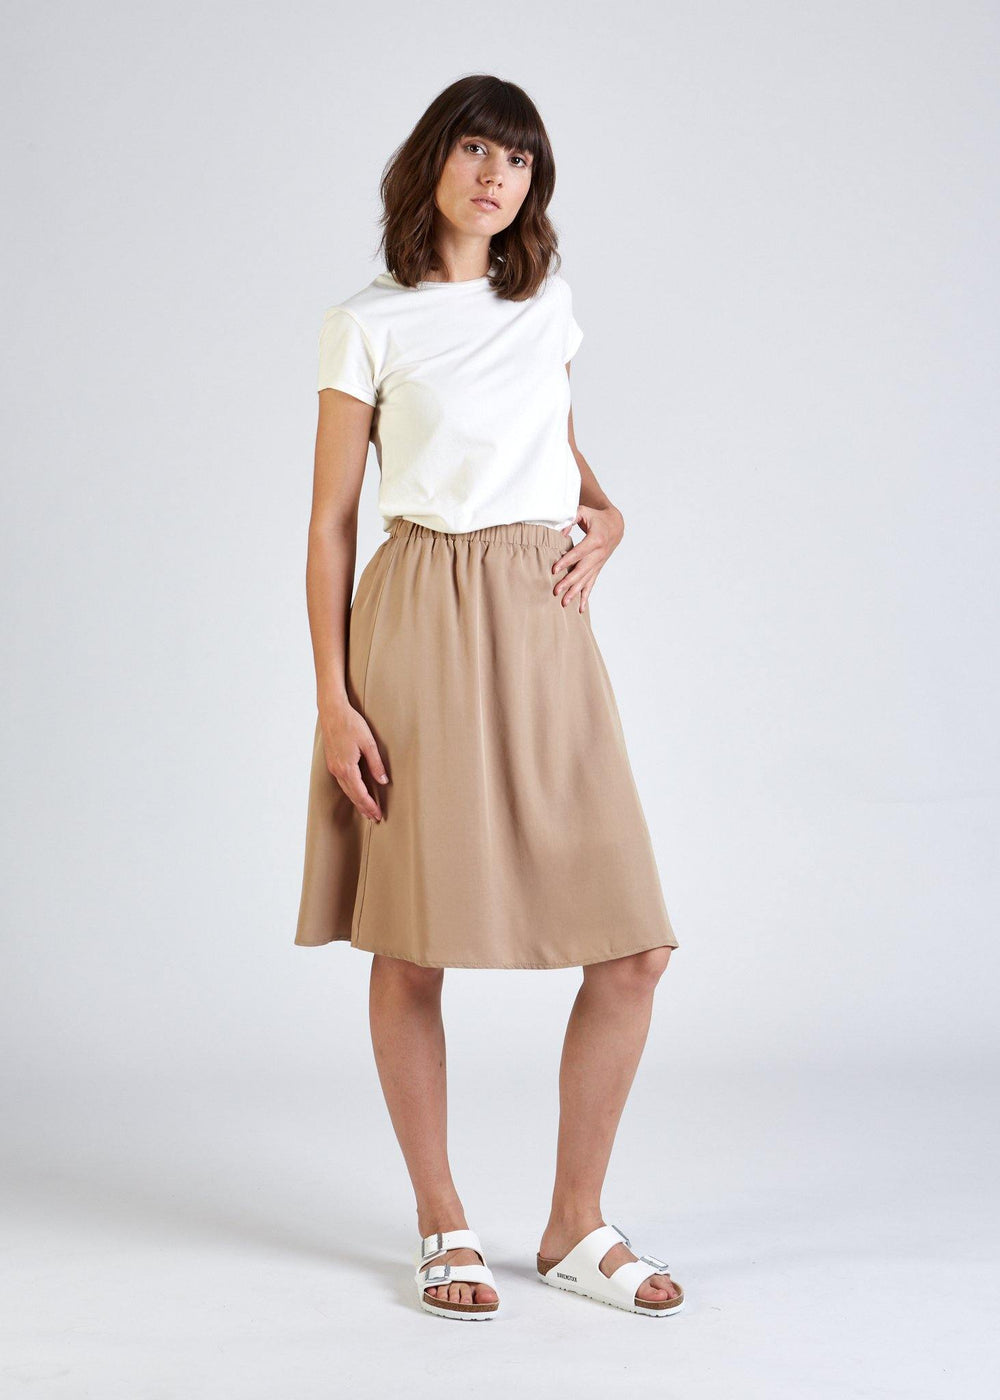 Givn BERLIN Rock LEONIE aus TENCEL™ Lyocell Skirt Light Camel (Tencel)